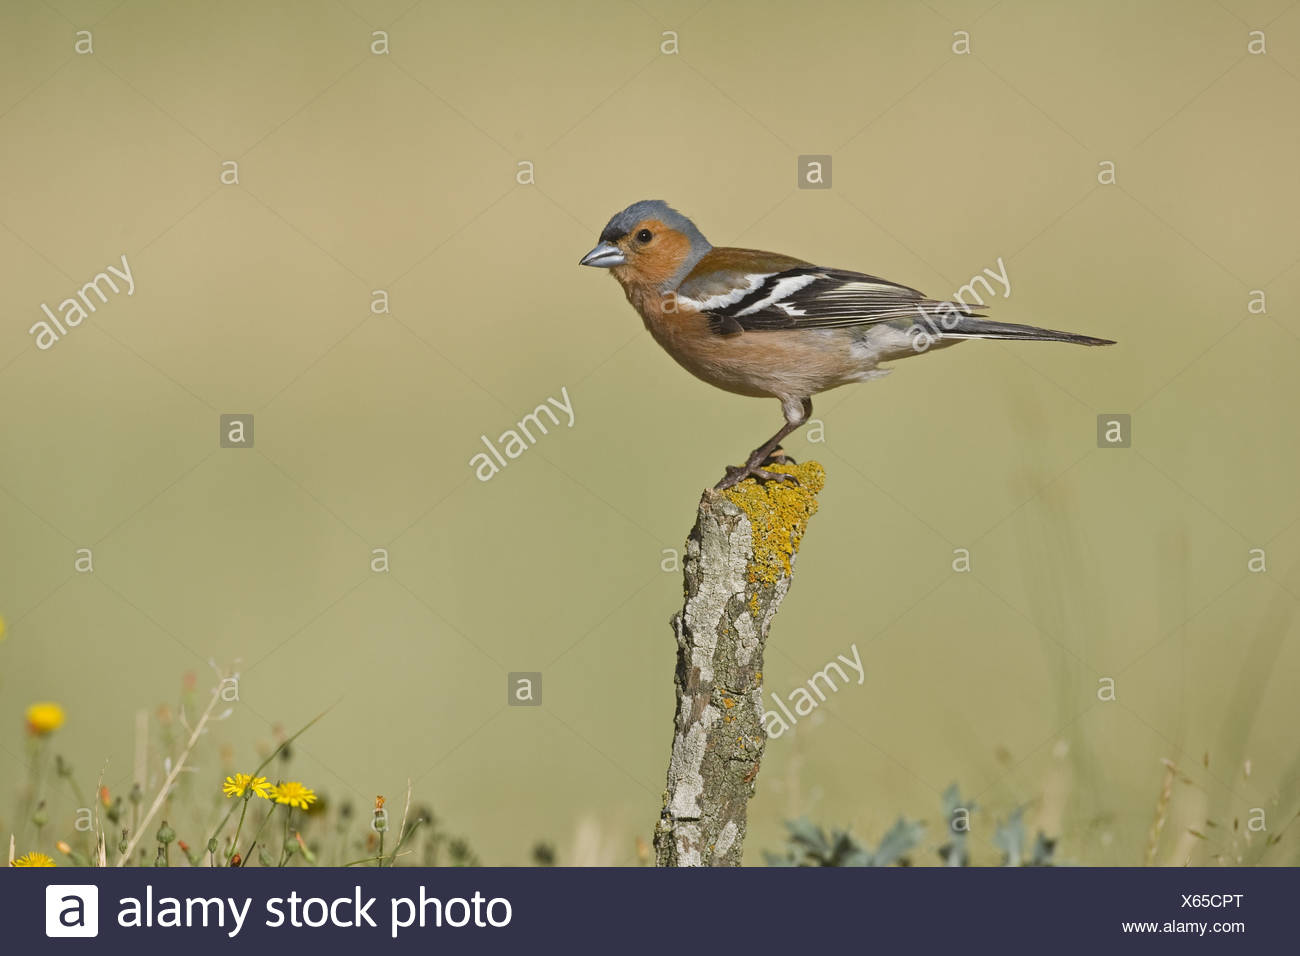 Chaffinch (Fringilla coelebs) adult male, perched on stick, Spain - Stock Image